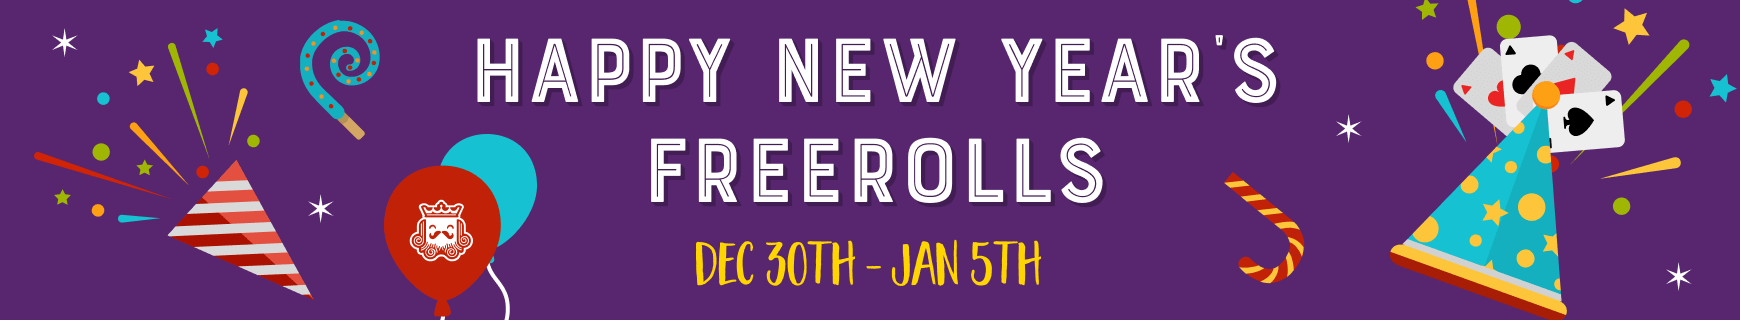 Happy new year%e2%80%99s freerolls   dashboard %28870 x 160%29 2x